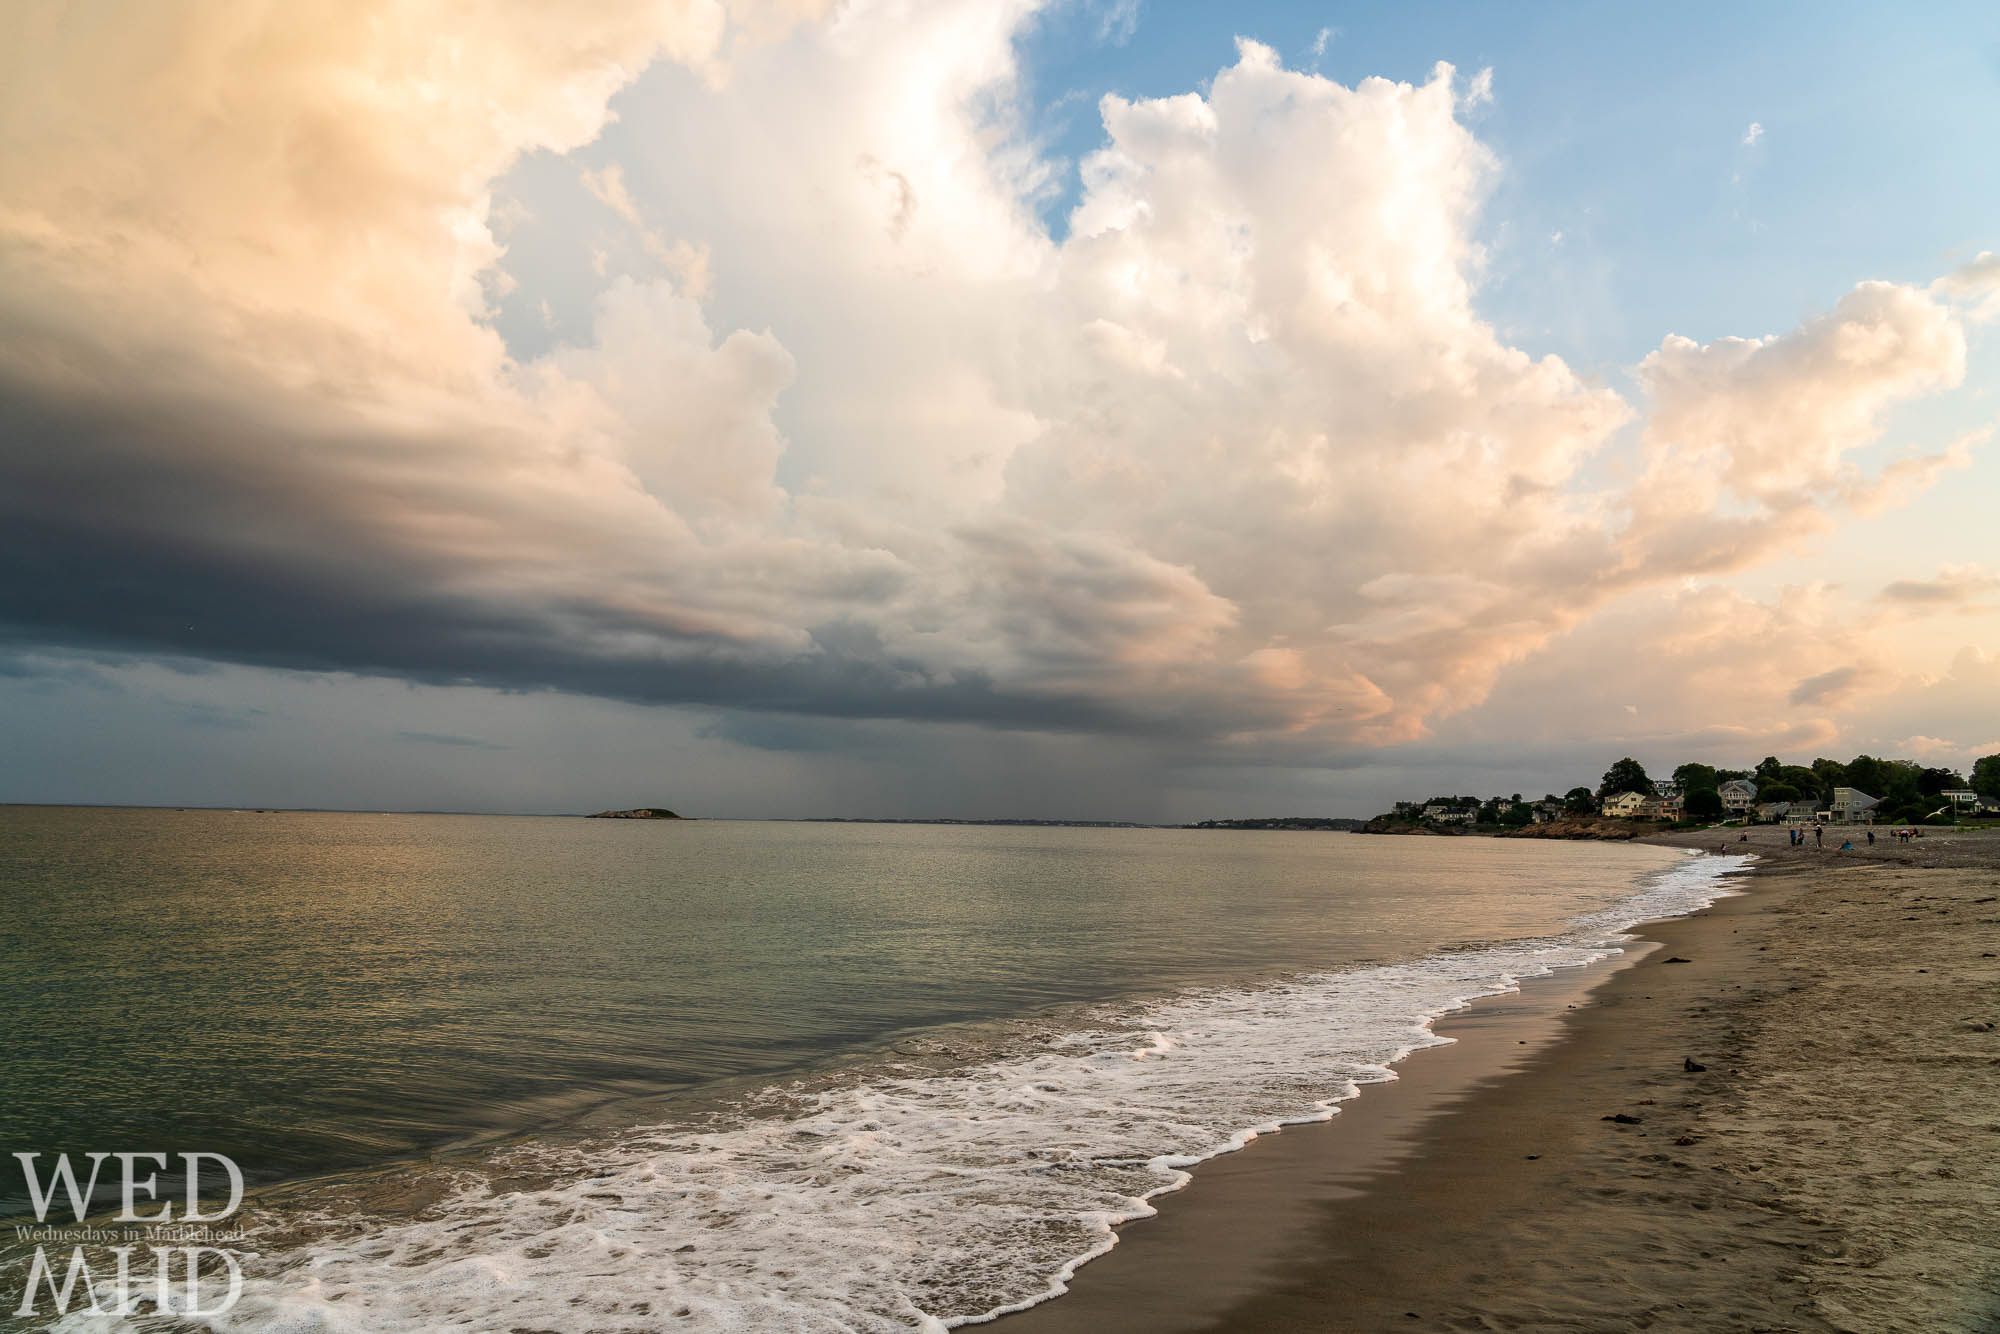 Clouds and surf come together at sunset to create a beatiful scene at Devereux Beach